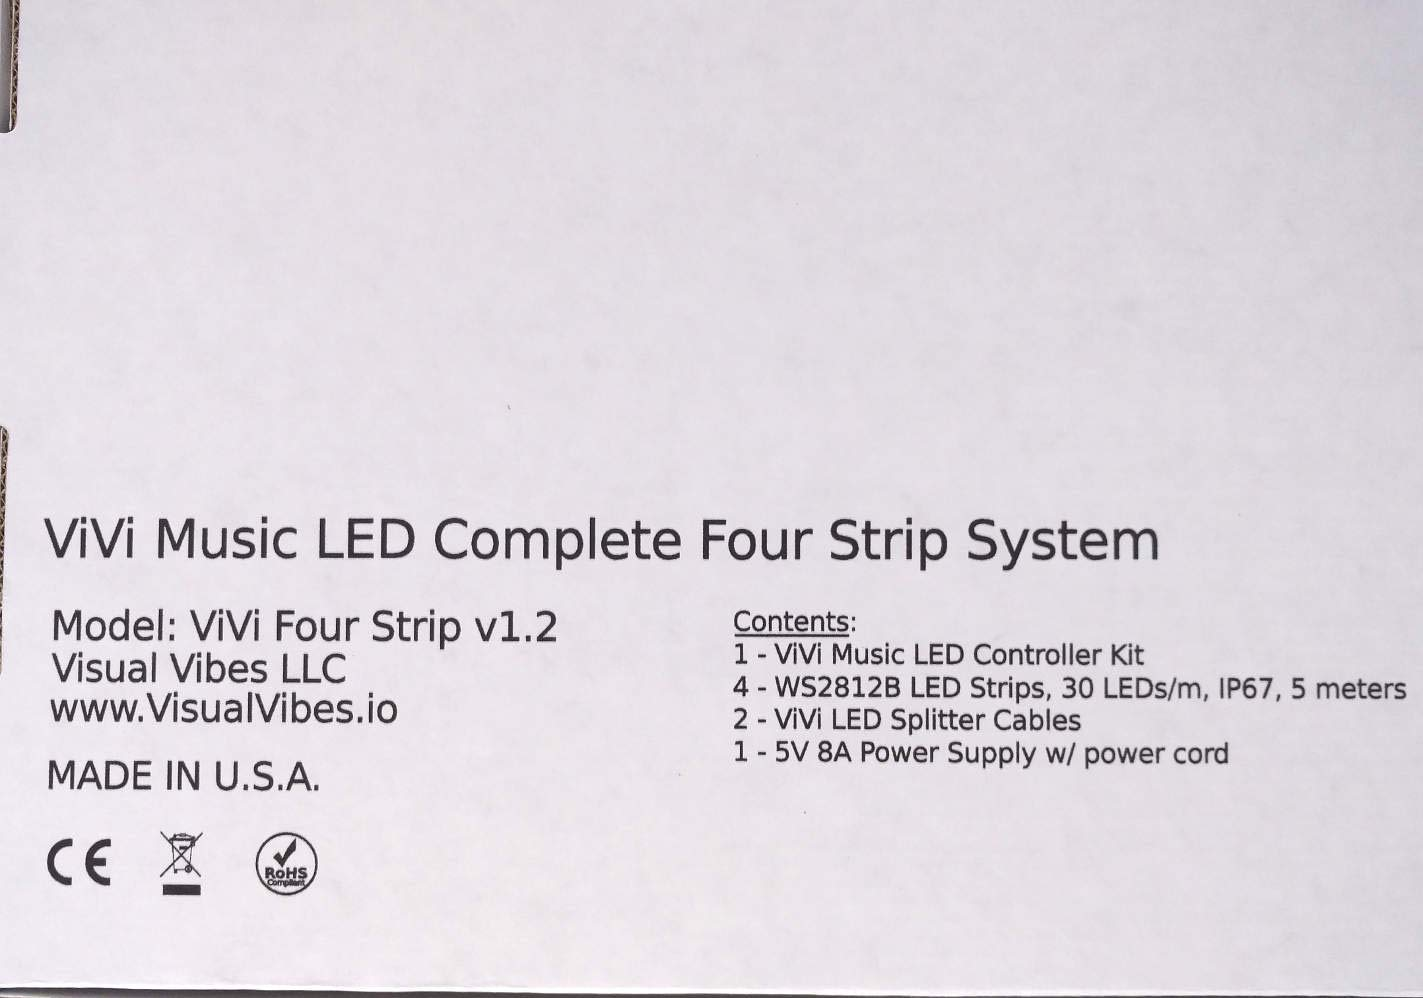 ViVi Music LED Controller 4 Strip Lighting System featuring VibeSync  Technology - Professional Addressable LED Controller